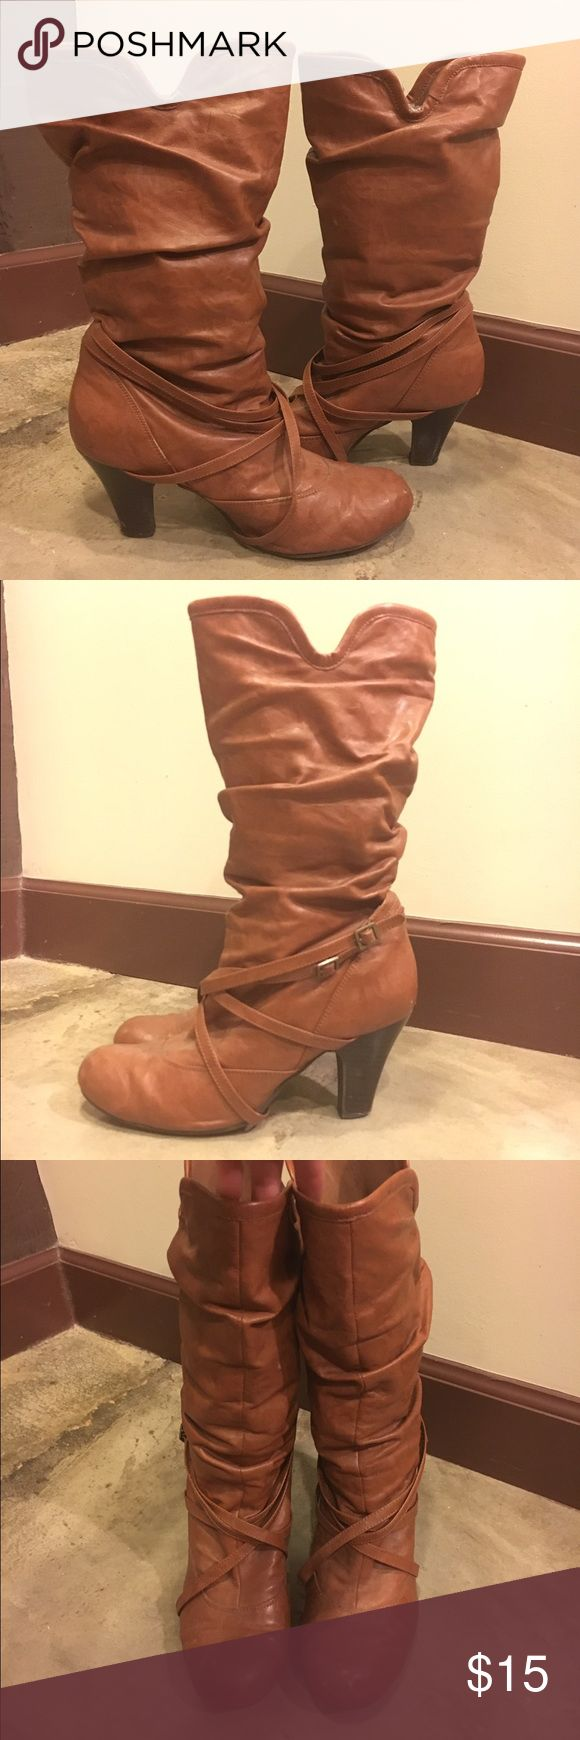 Madden girl brown heeled boots with small buckle Cute Madden girl heeled boots with wrap and buckle on side. Very comfortable and fits many sizes of calves. I would wear boot socks with them to make more scrunchy! They just slip on, no need to unbuckle. Madden Girl Shoes Heeled Boots